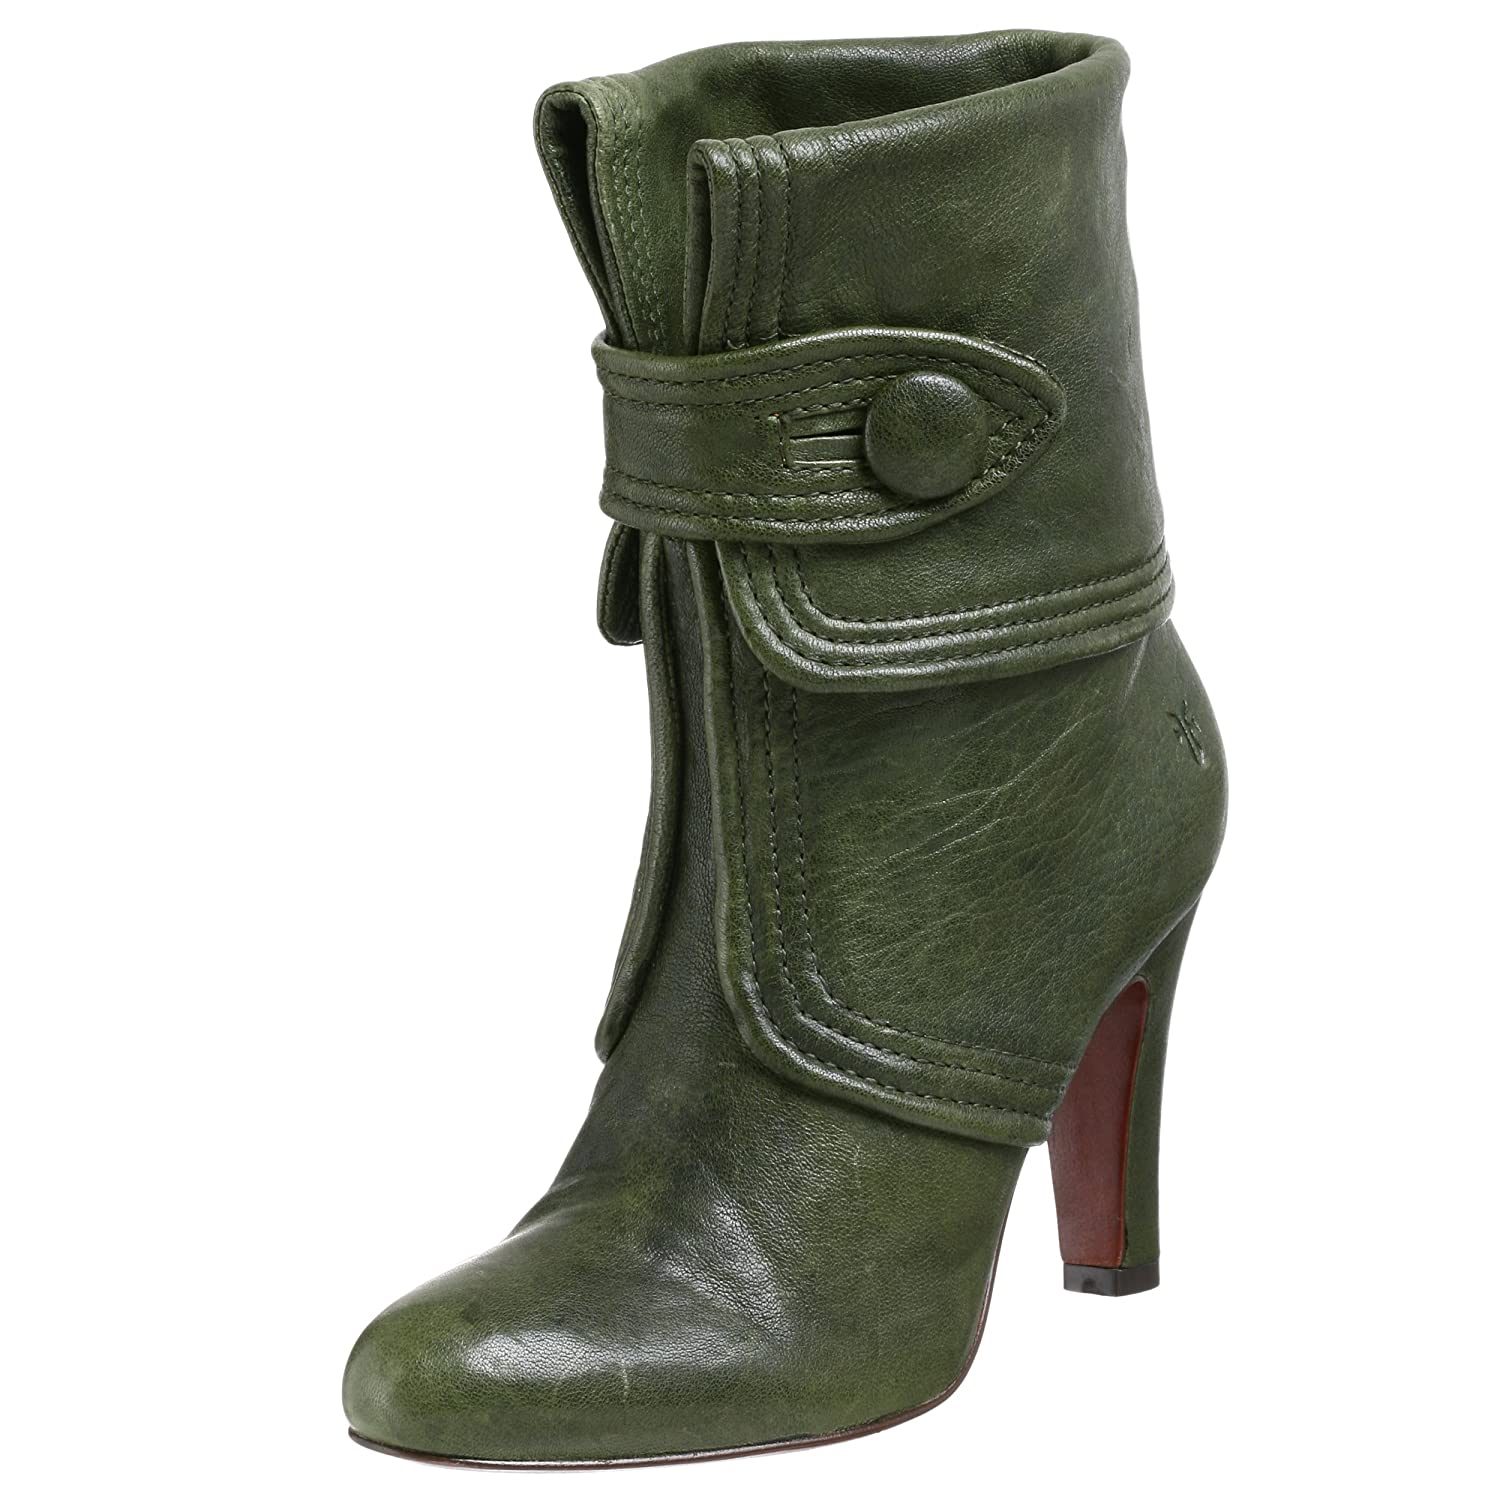 FRYE Ava Button Bootie - Free Overnight Shipping & Return Shipping: Endless.com :  shoes fold over cuff tab ankle boot